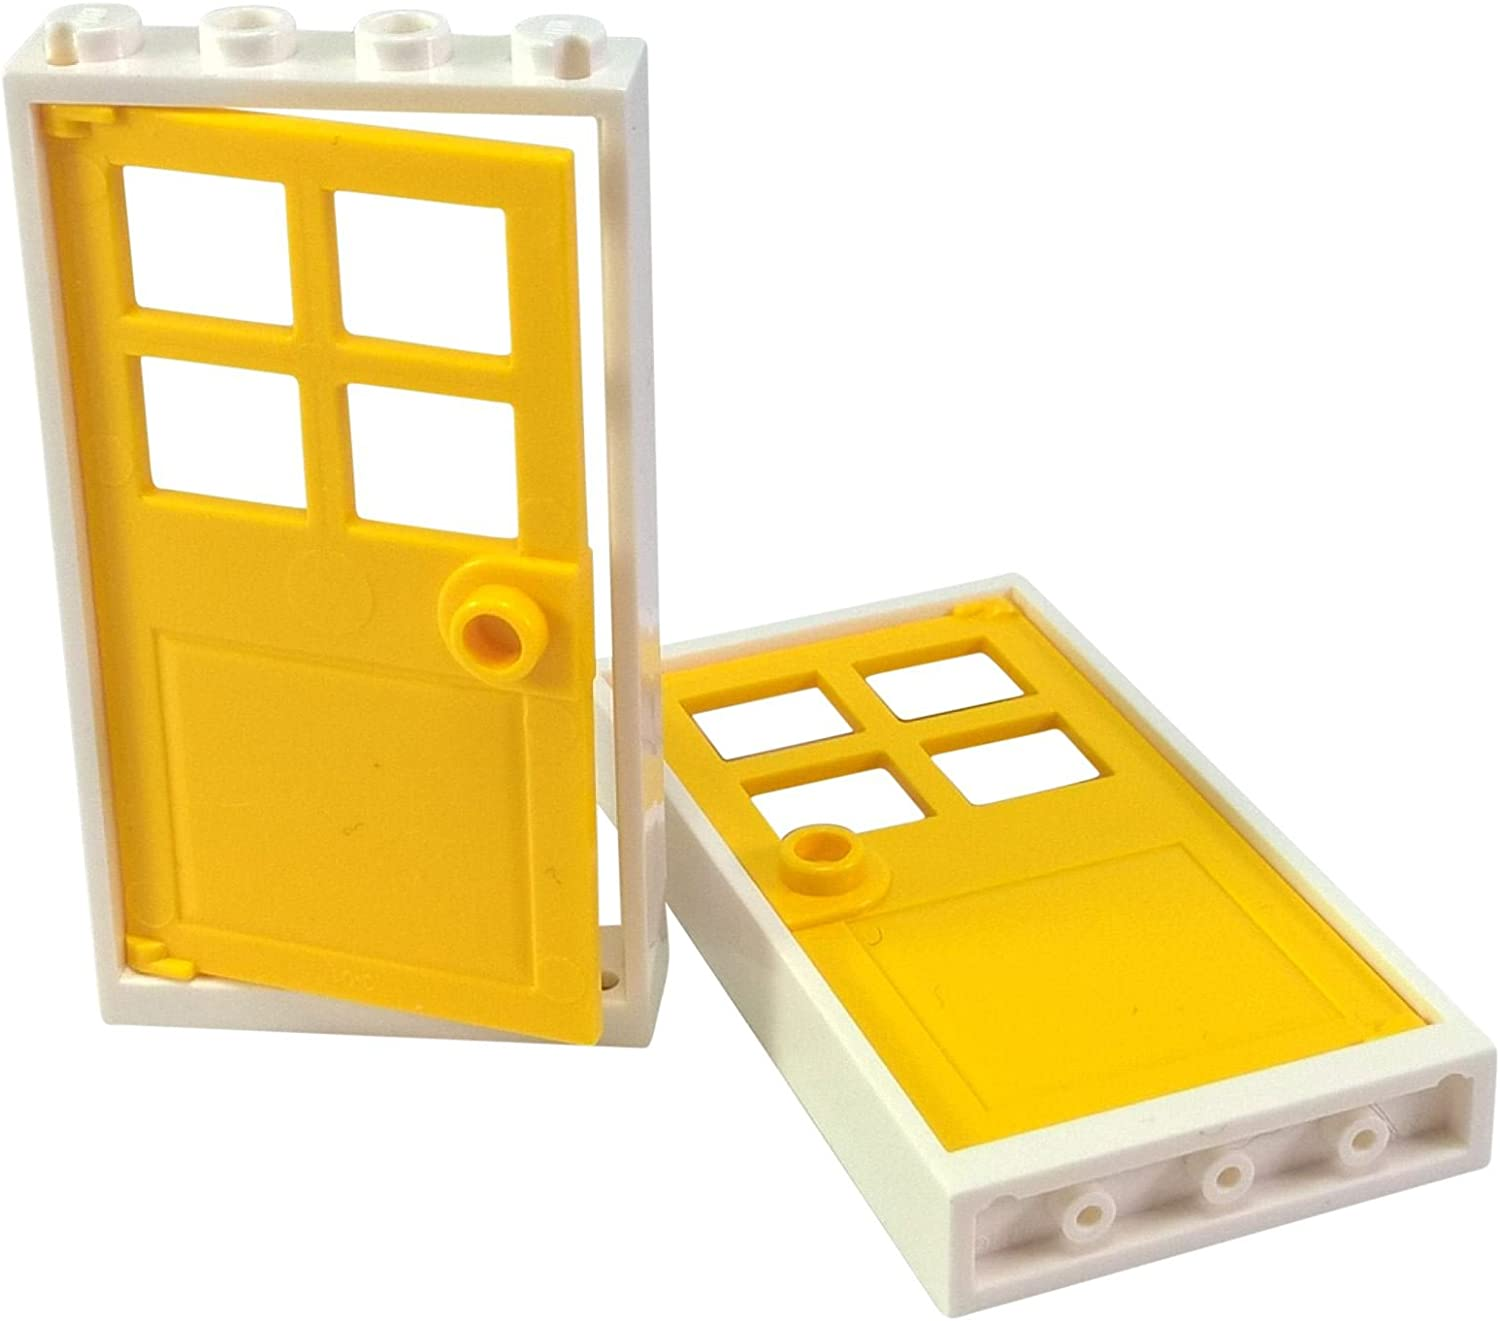 Lego New White Glass for Windows 1 x 4 x 6 Pieces